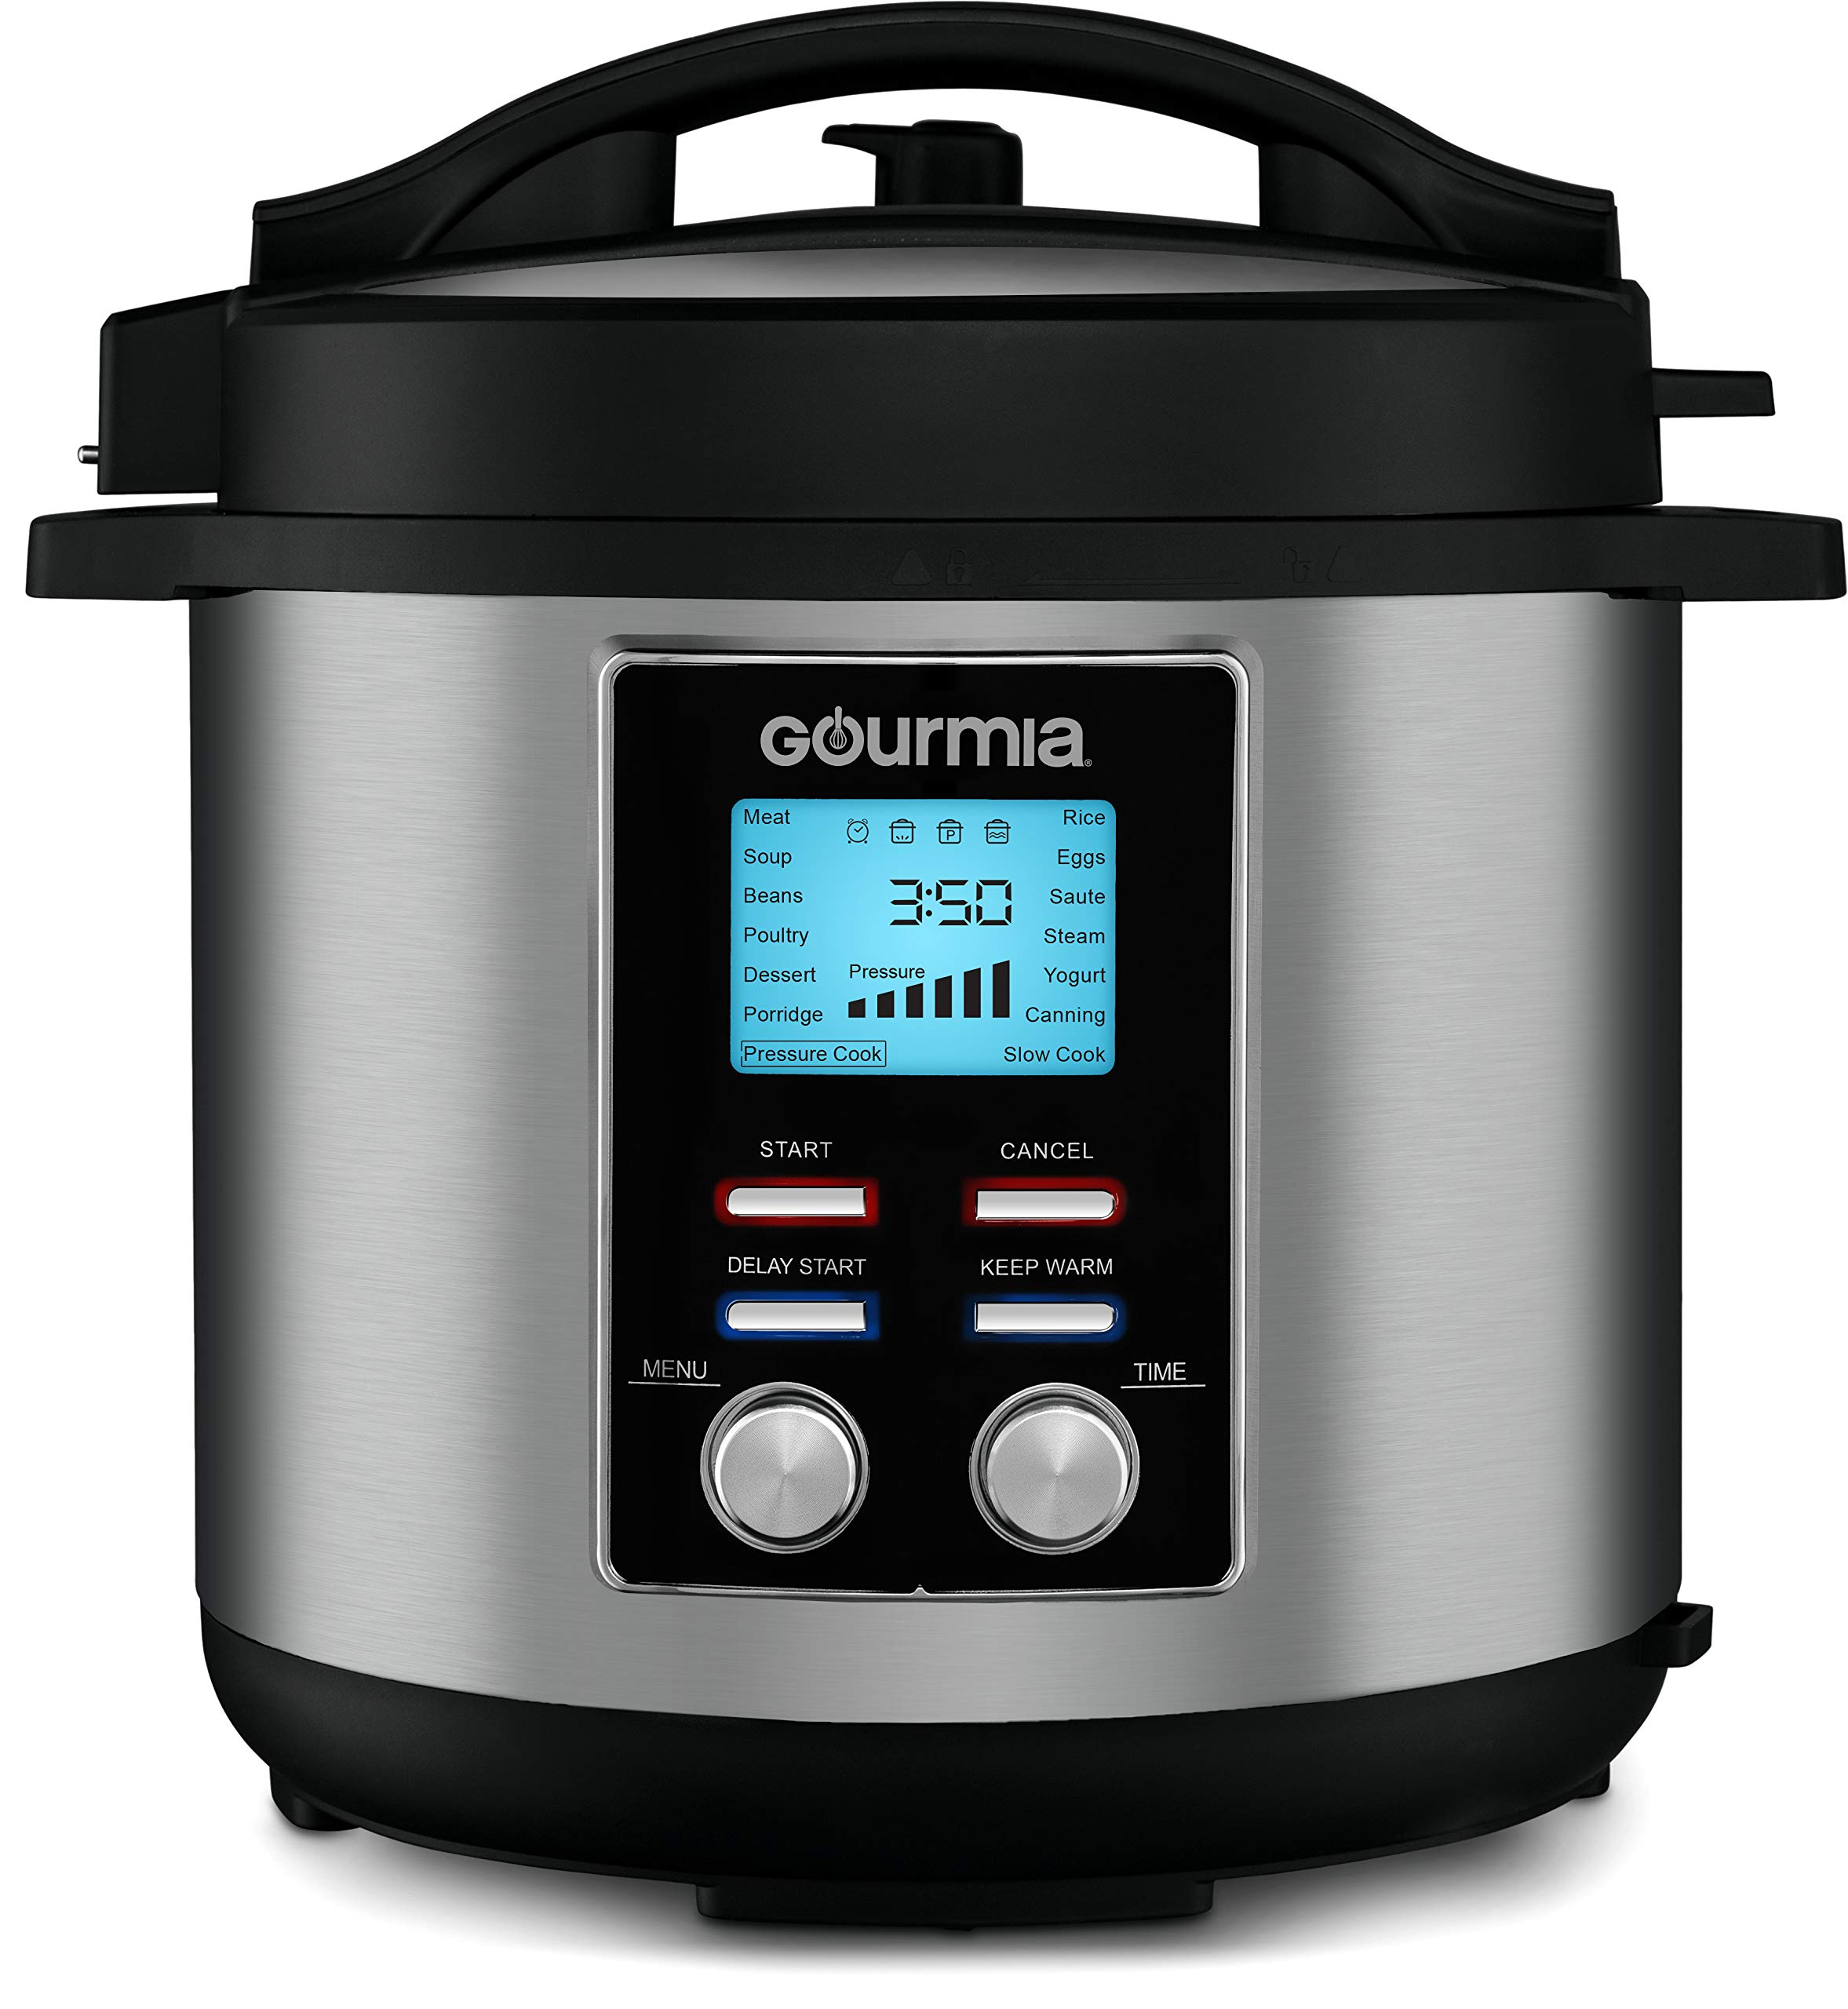 Gourmia GPC855 8 Qt Digital SmartPot Multi-Function Pressure Cooker | 15 Cook Modes | Removable Nonstick Pot | 24-Hour Delay Timer | Automatic Keep Warm | LCD Display | Pressure Sensor Lid Lock by Gourmia (Image #1)